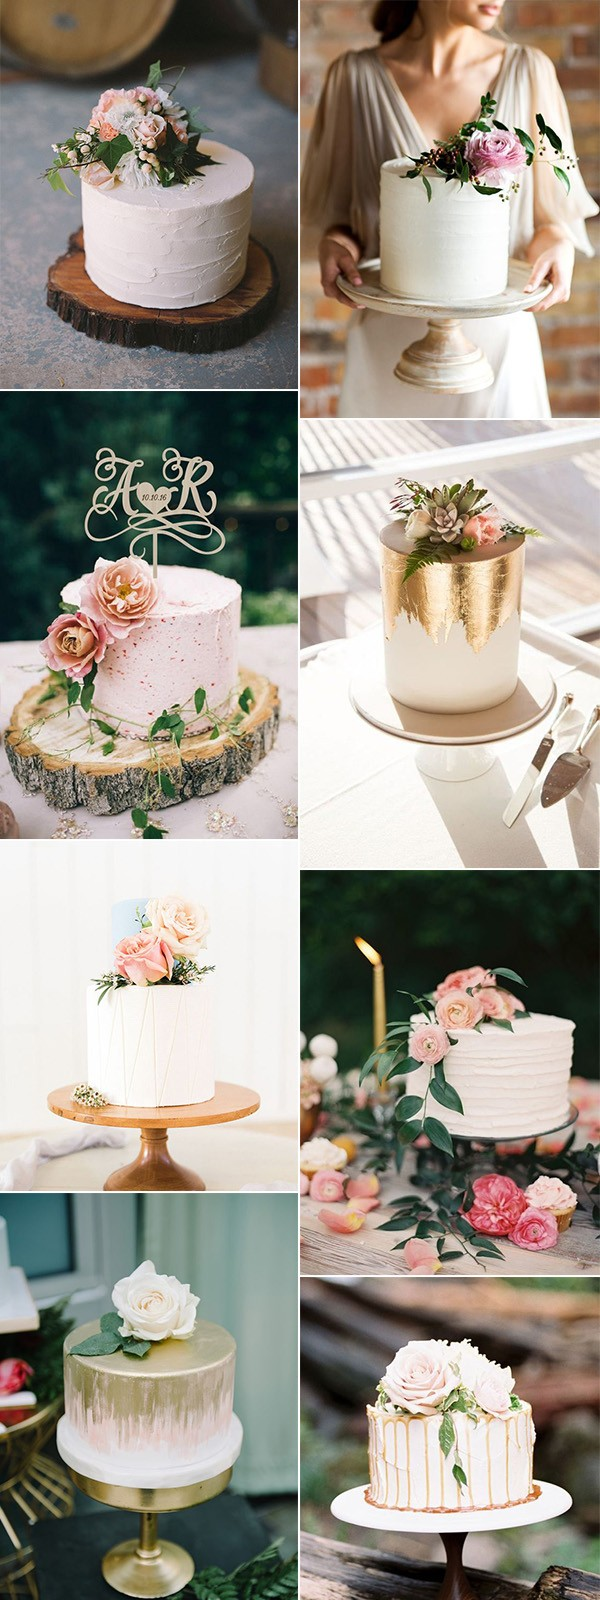 trending chic single layer wedding cakes for 2019